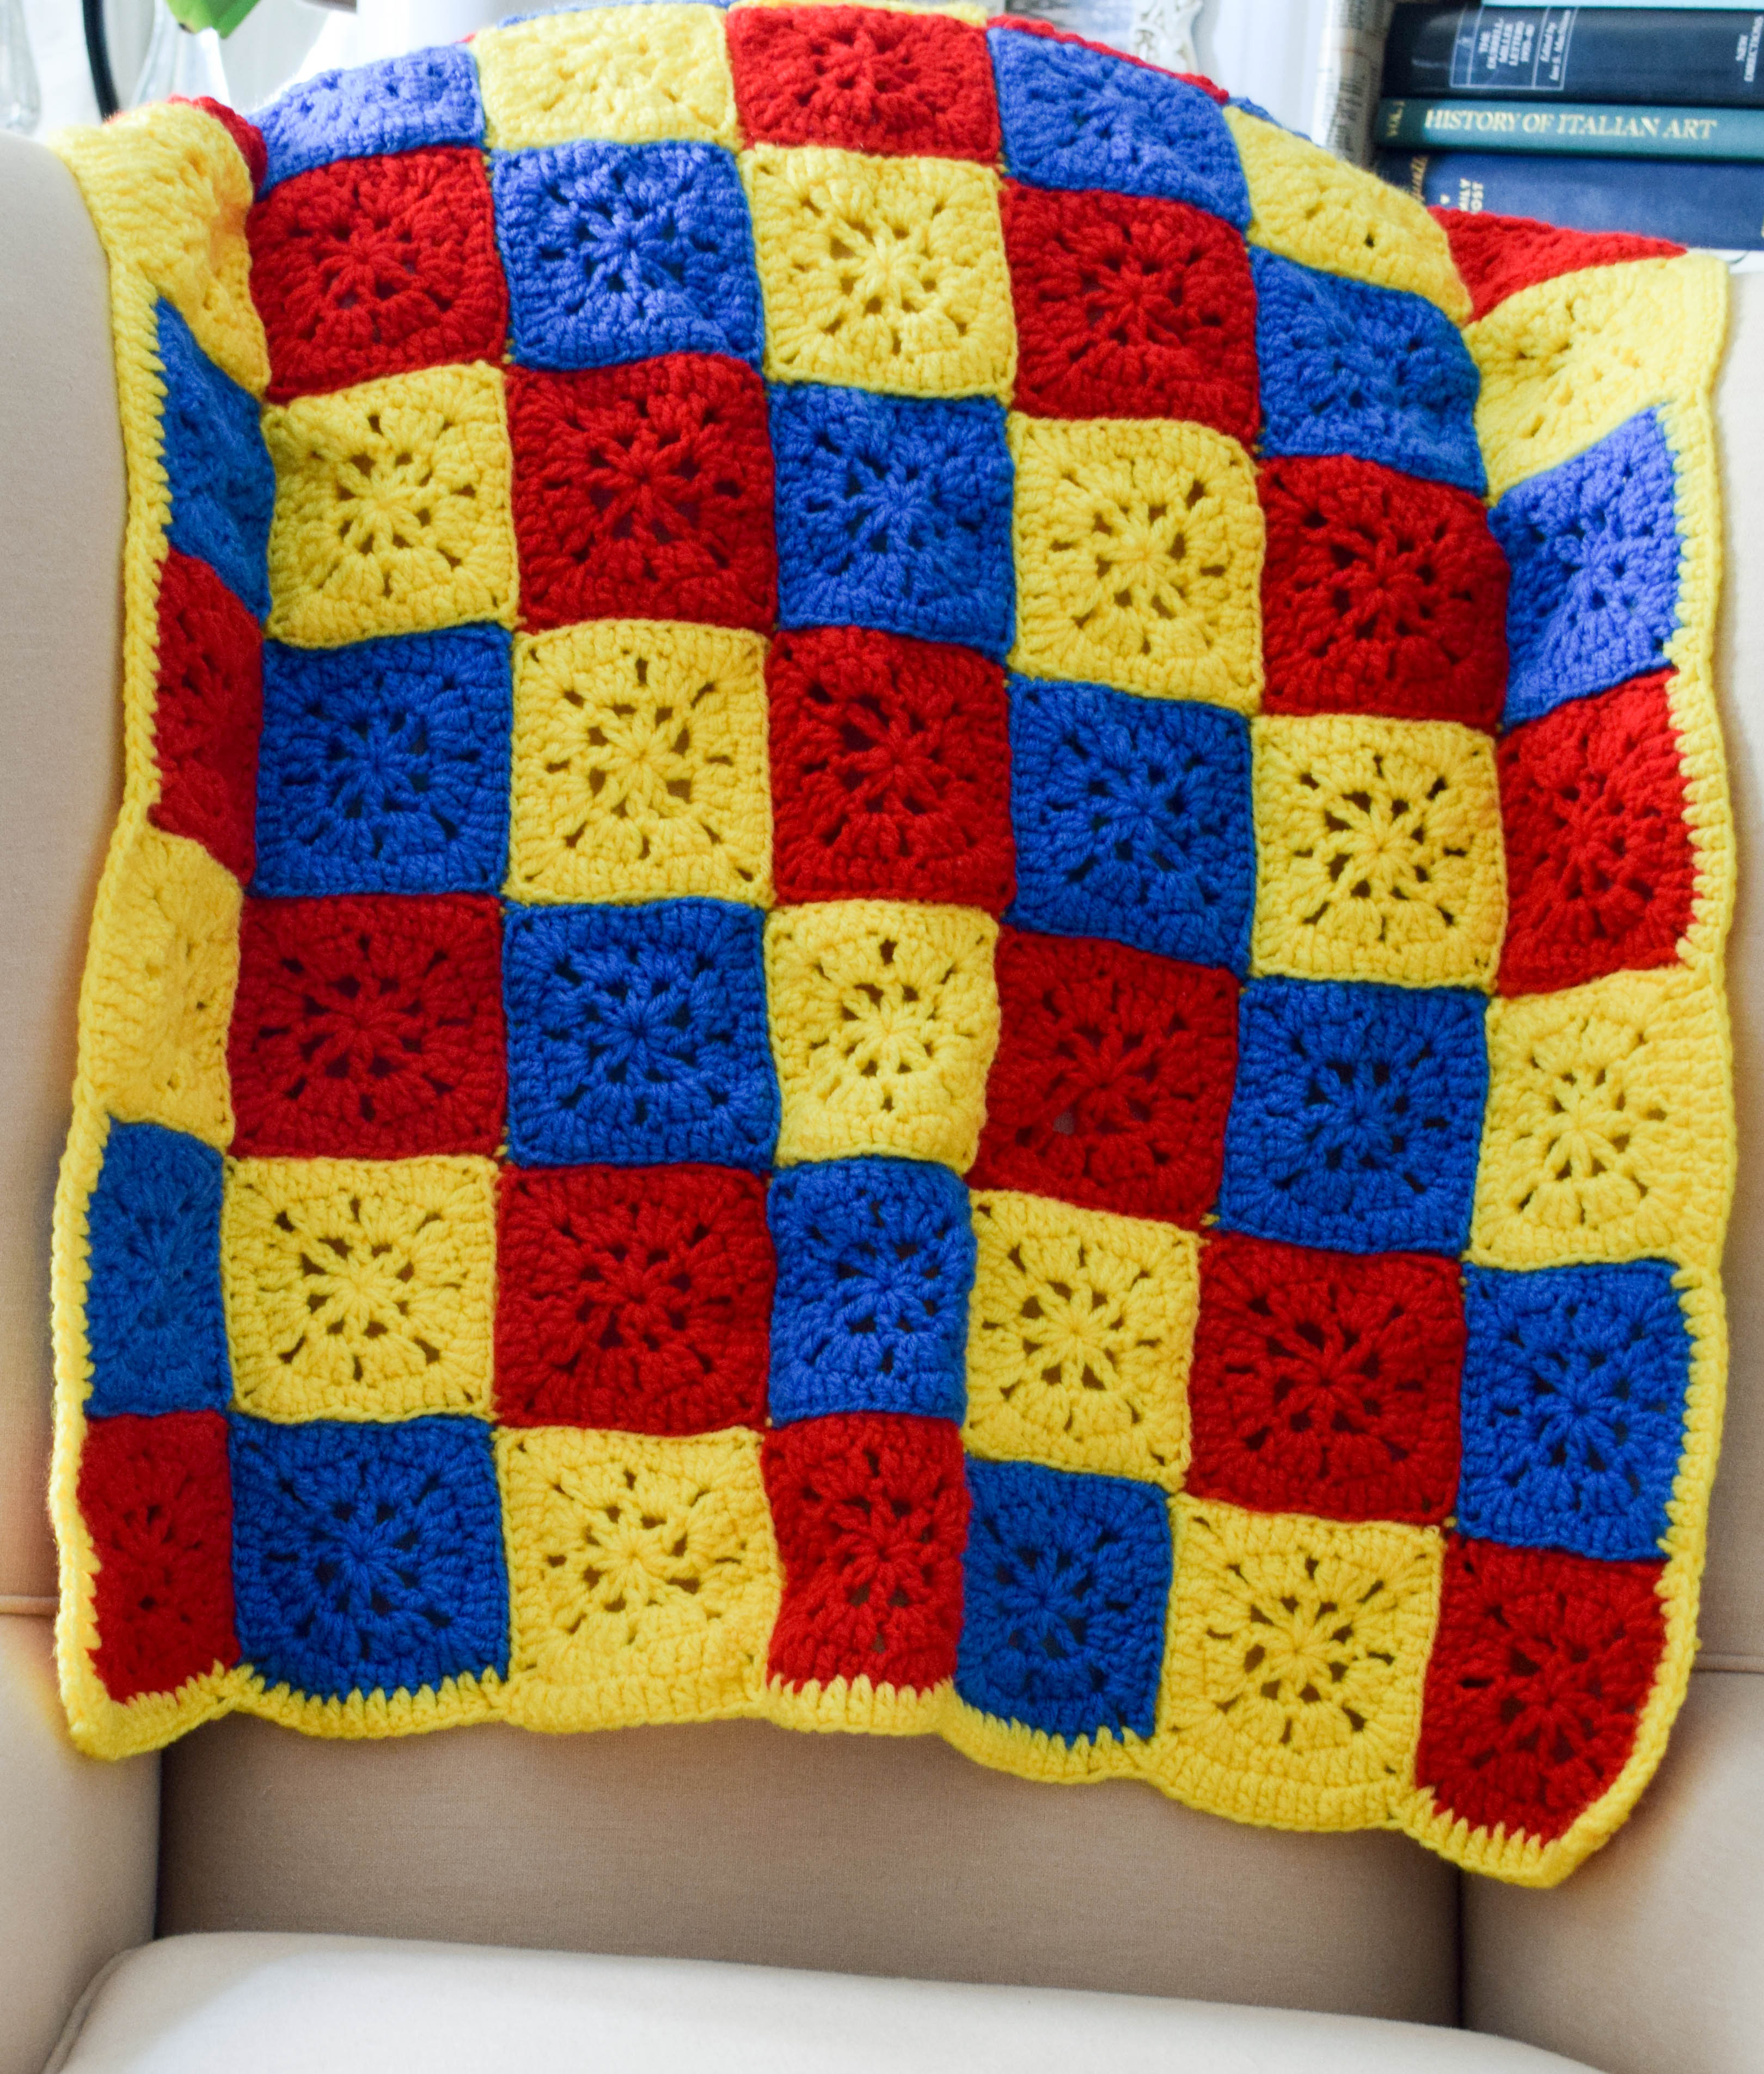 Checkerboard in Primary Colors Stroller Blanket - FaveCrafts